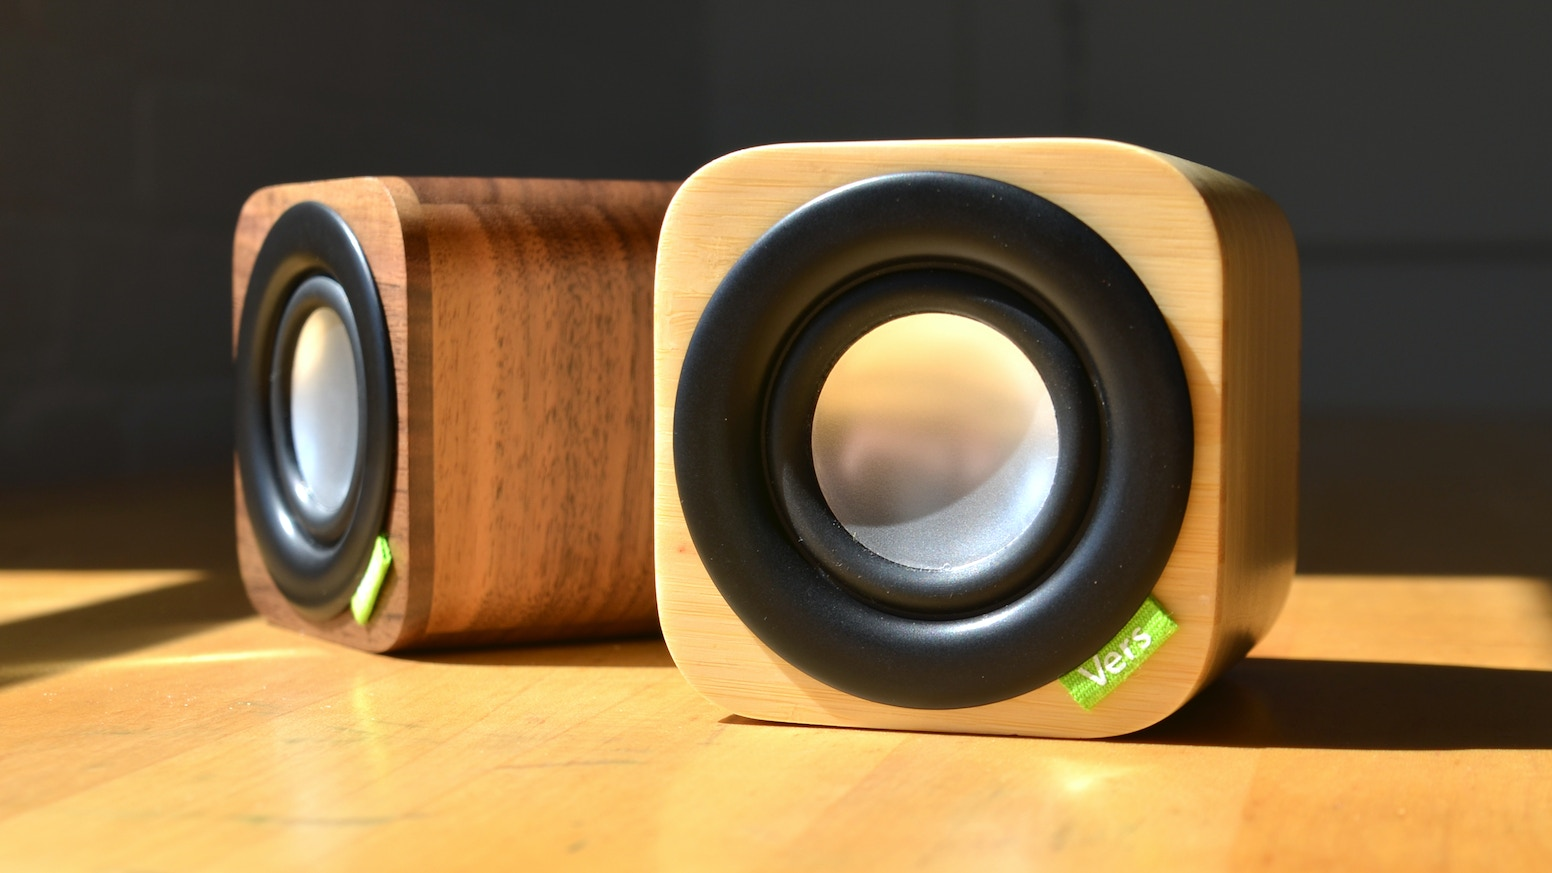 1Q is a compact, powerful Bluetooth sound system with a hand crafted, solid wood cabinet - perfect for iPhone and iPad